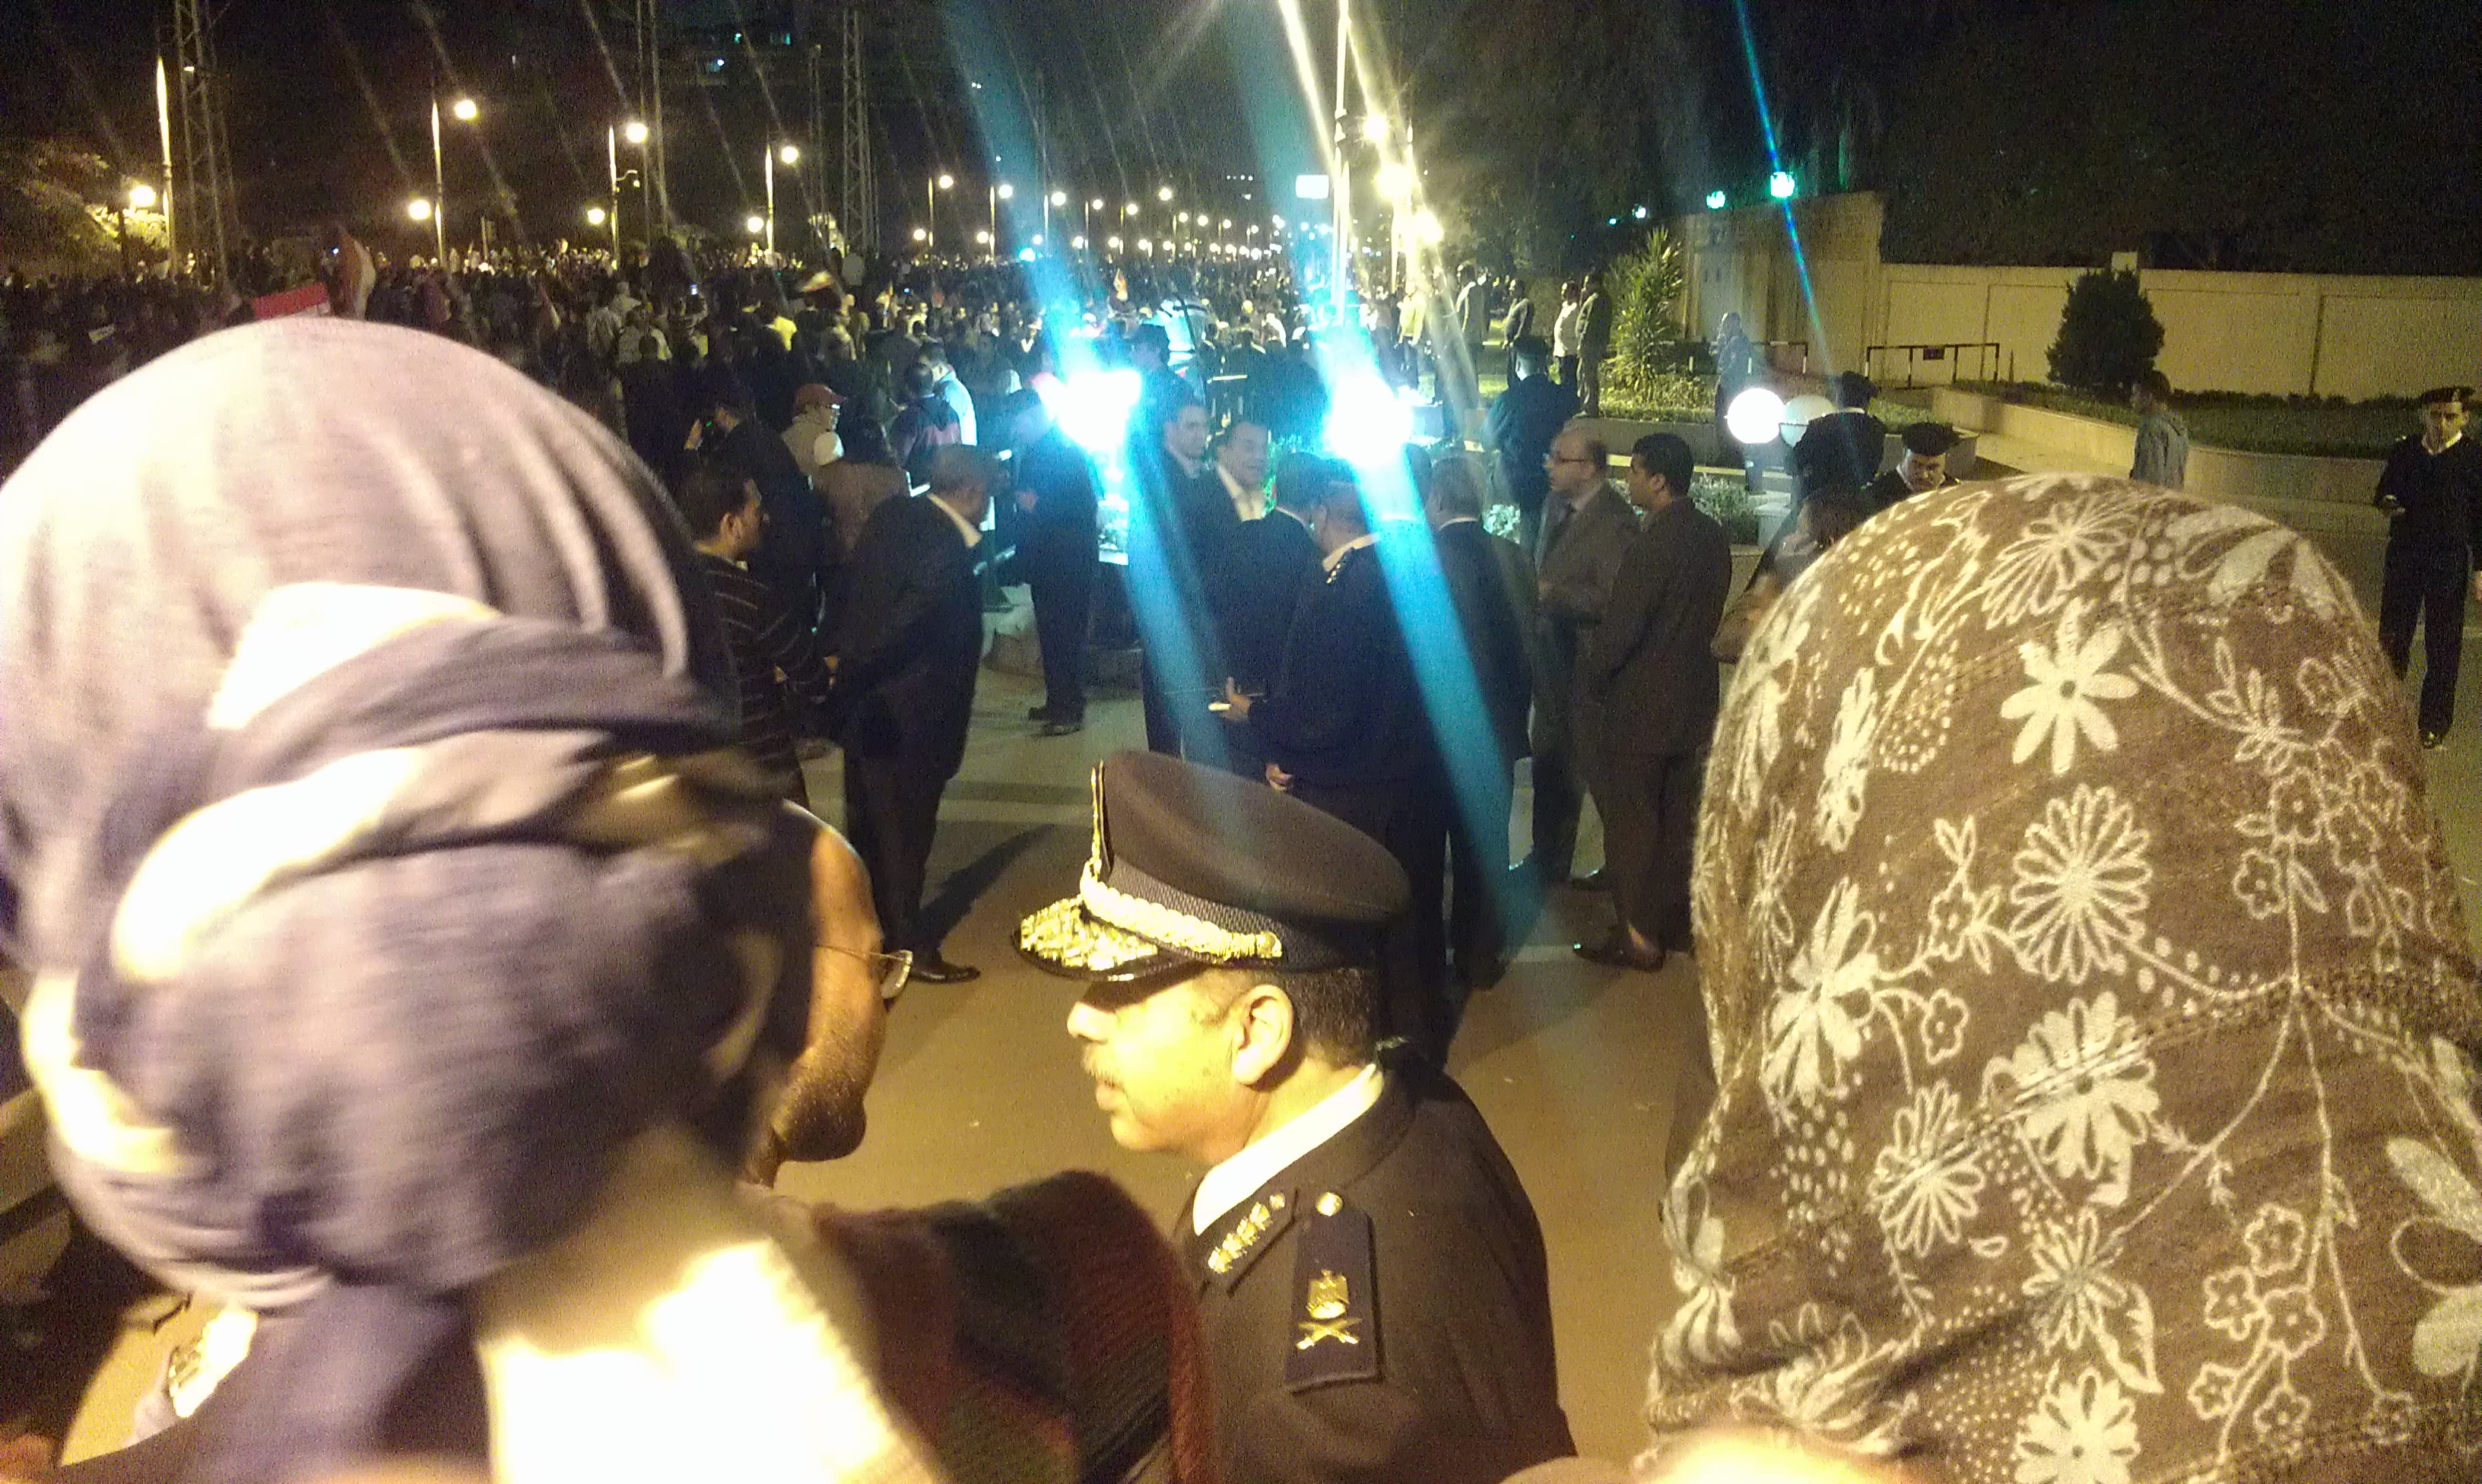 Police Officer talking to protesters.